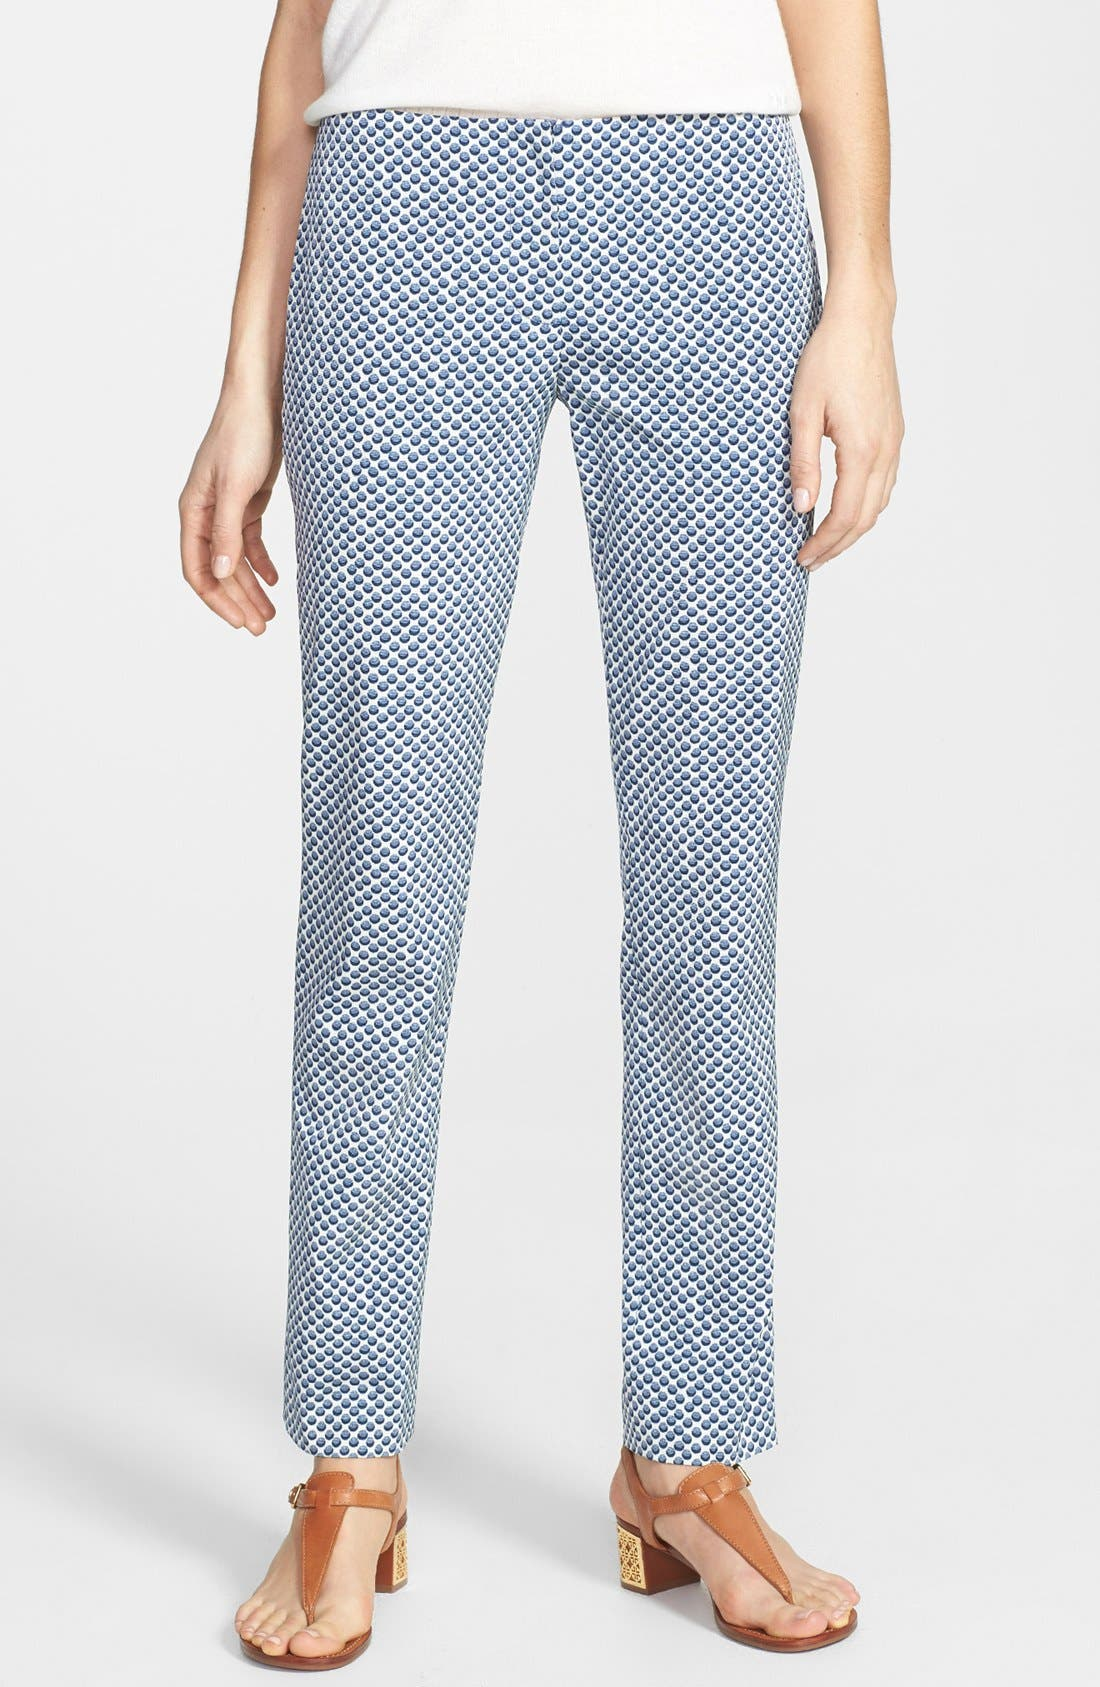 Main Image - Tory Burch 'Ruth' Dot Jacquard Ankle Pants